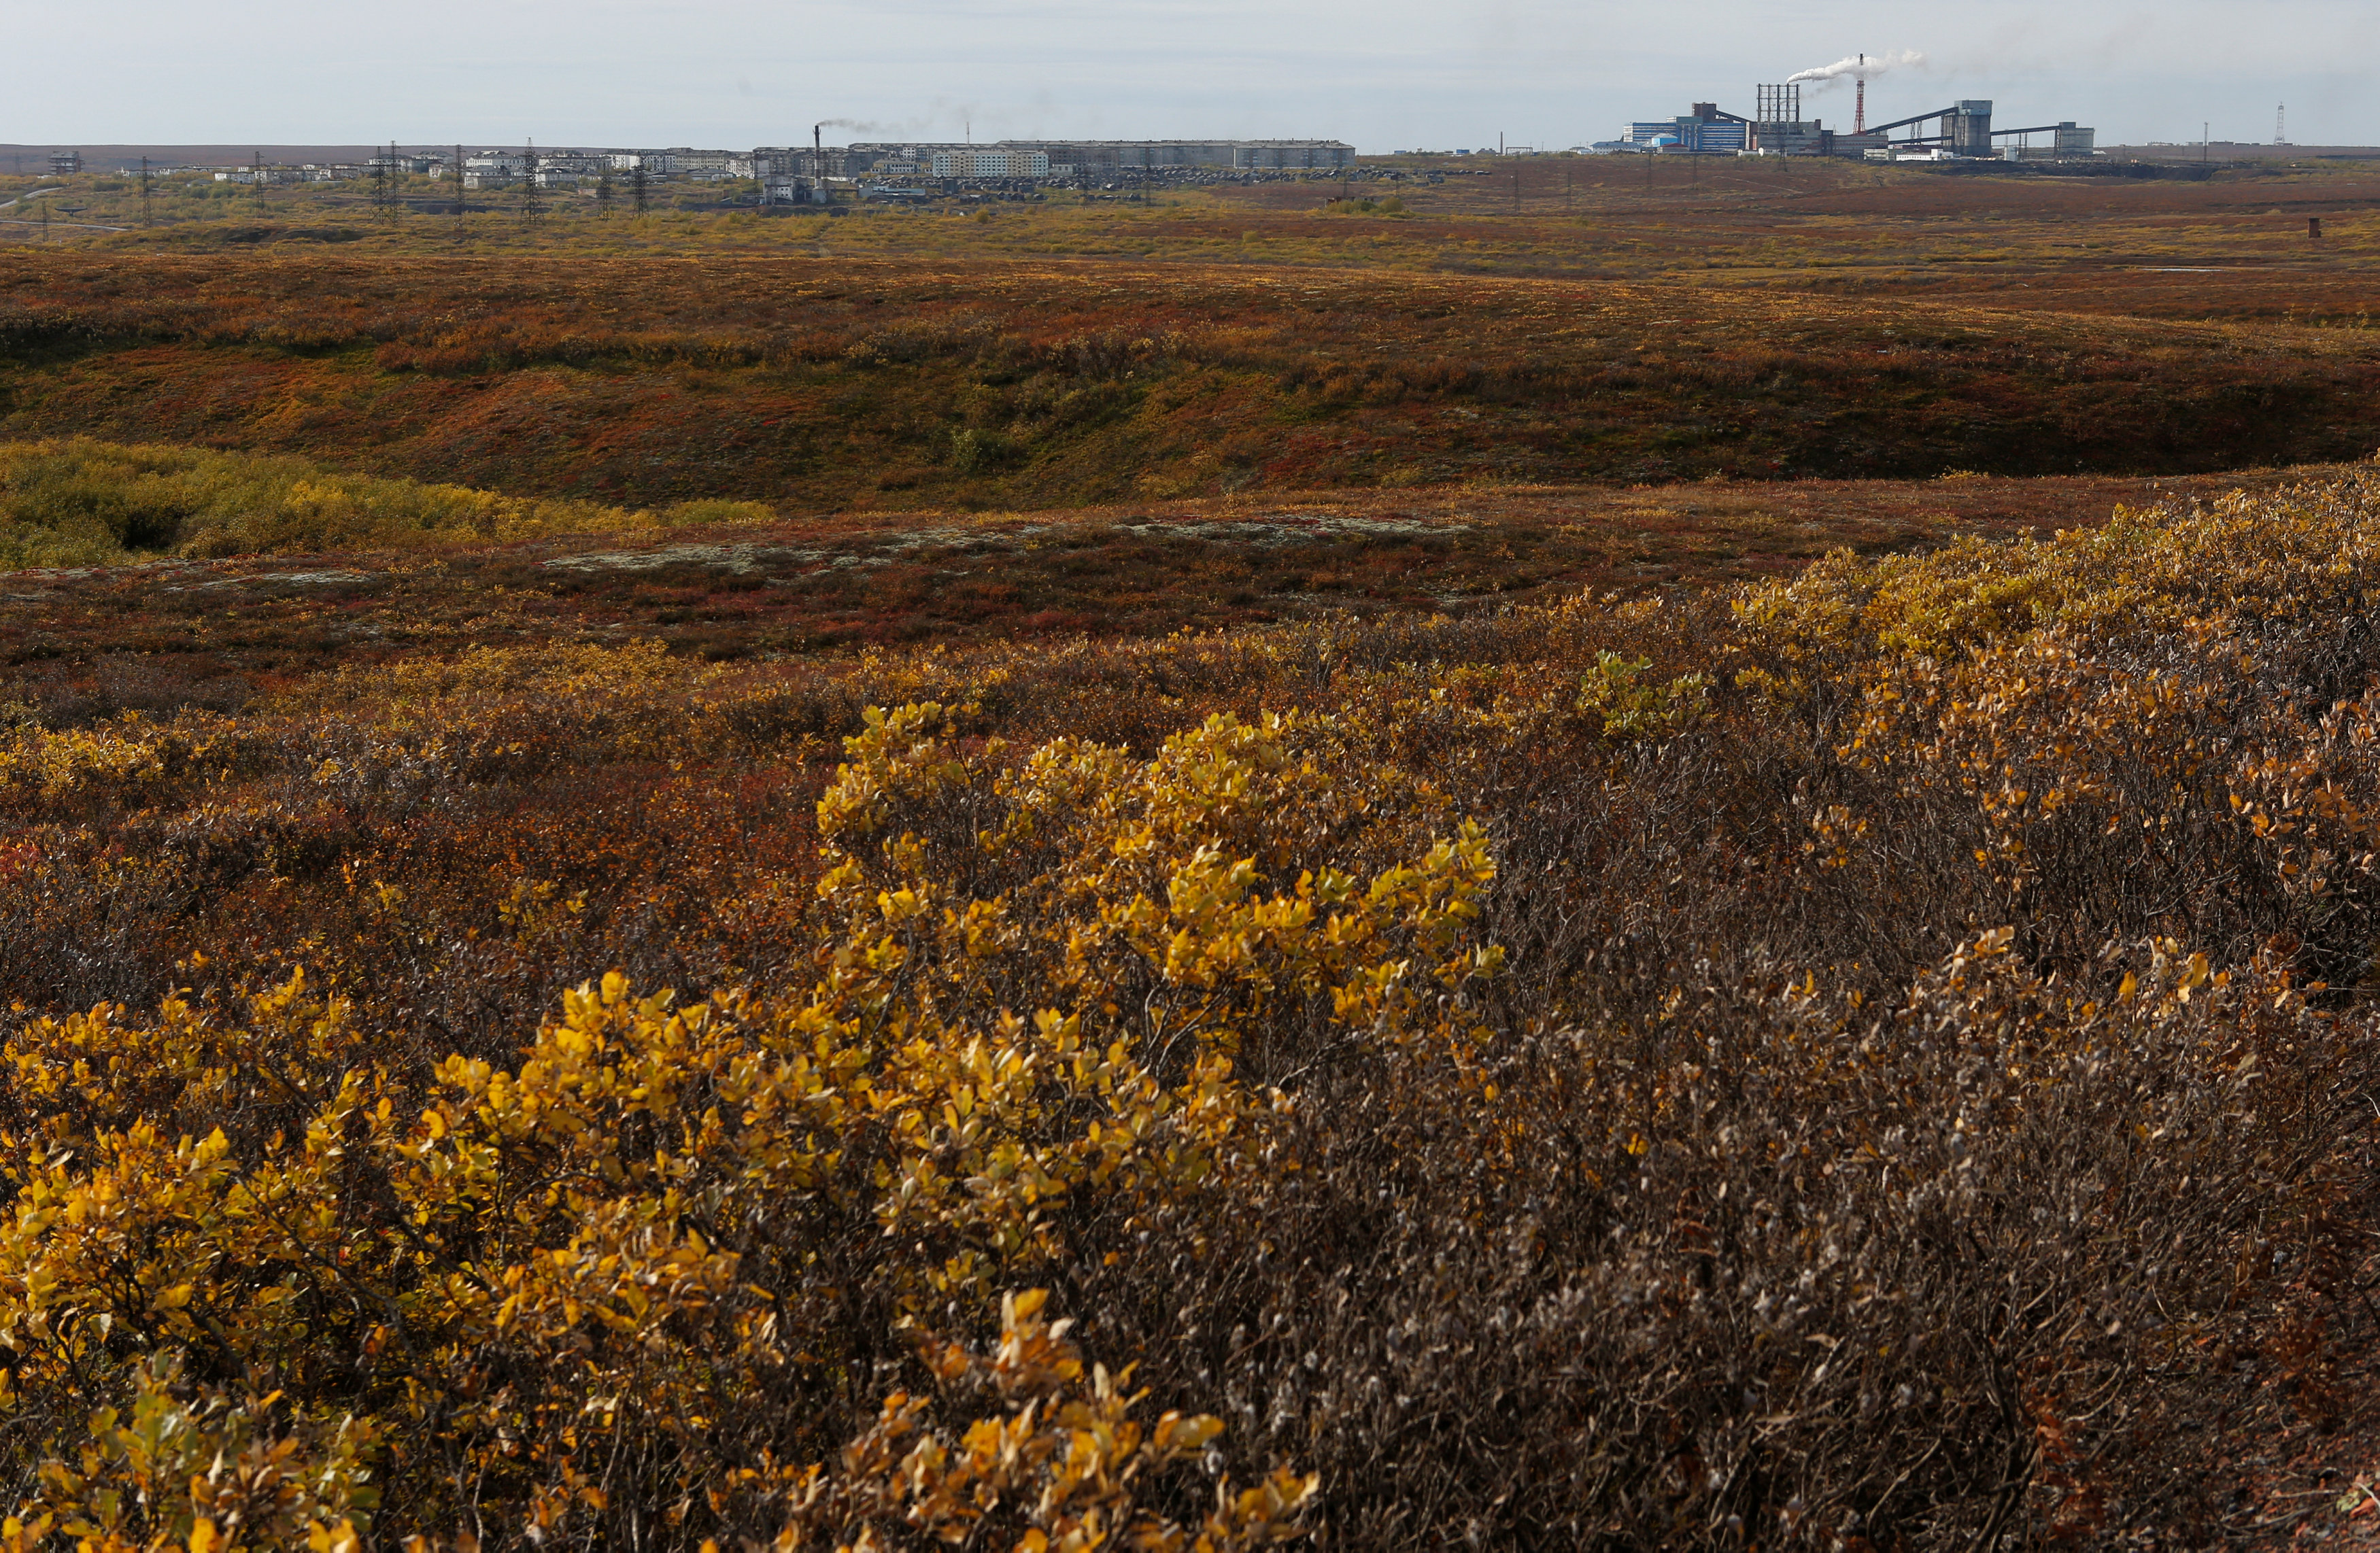 A view shows the Tundra area near the Pechorskaya central processing factory under the Vorkutaugol company in Zapolyarny settlement outside the far northern city of Vorkuta